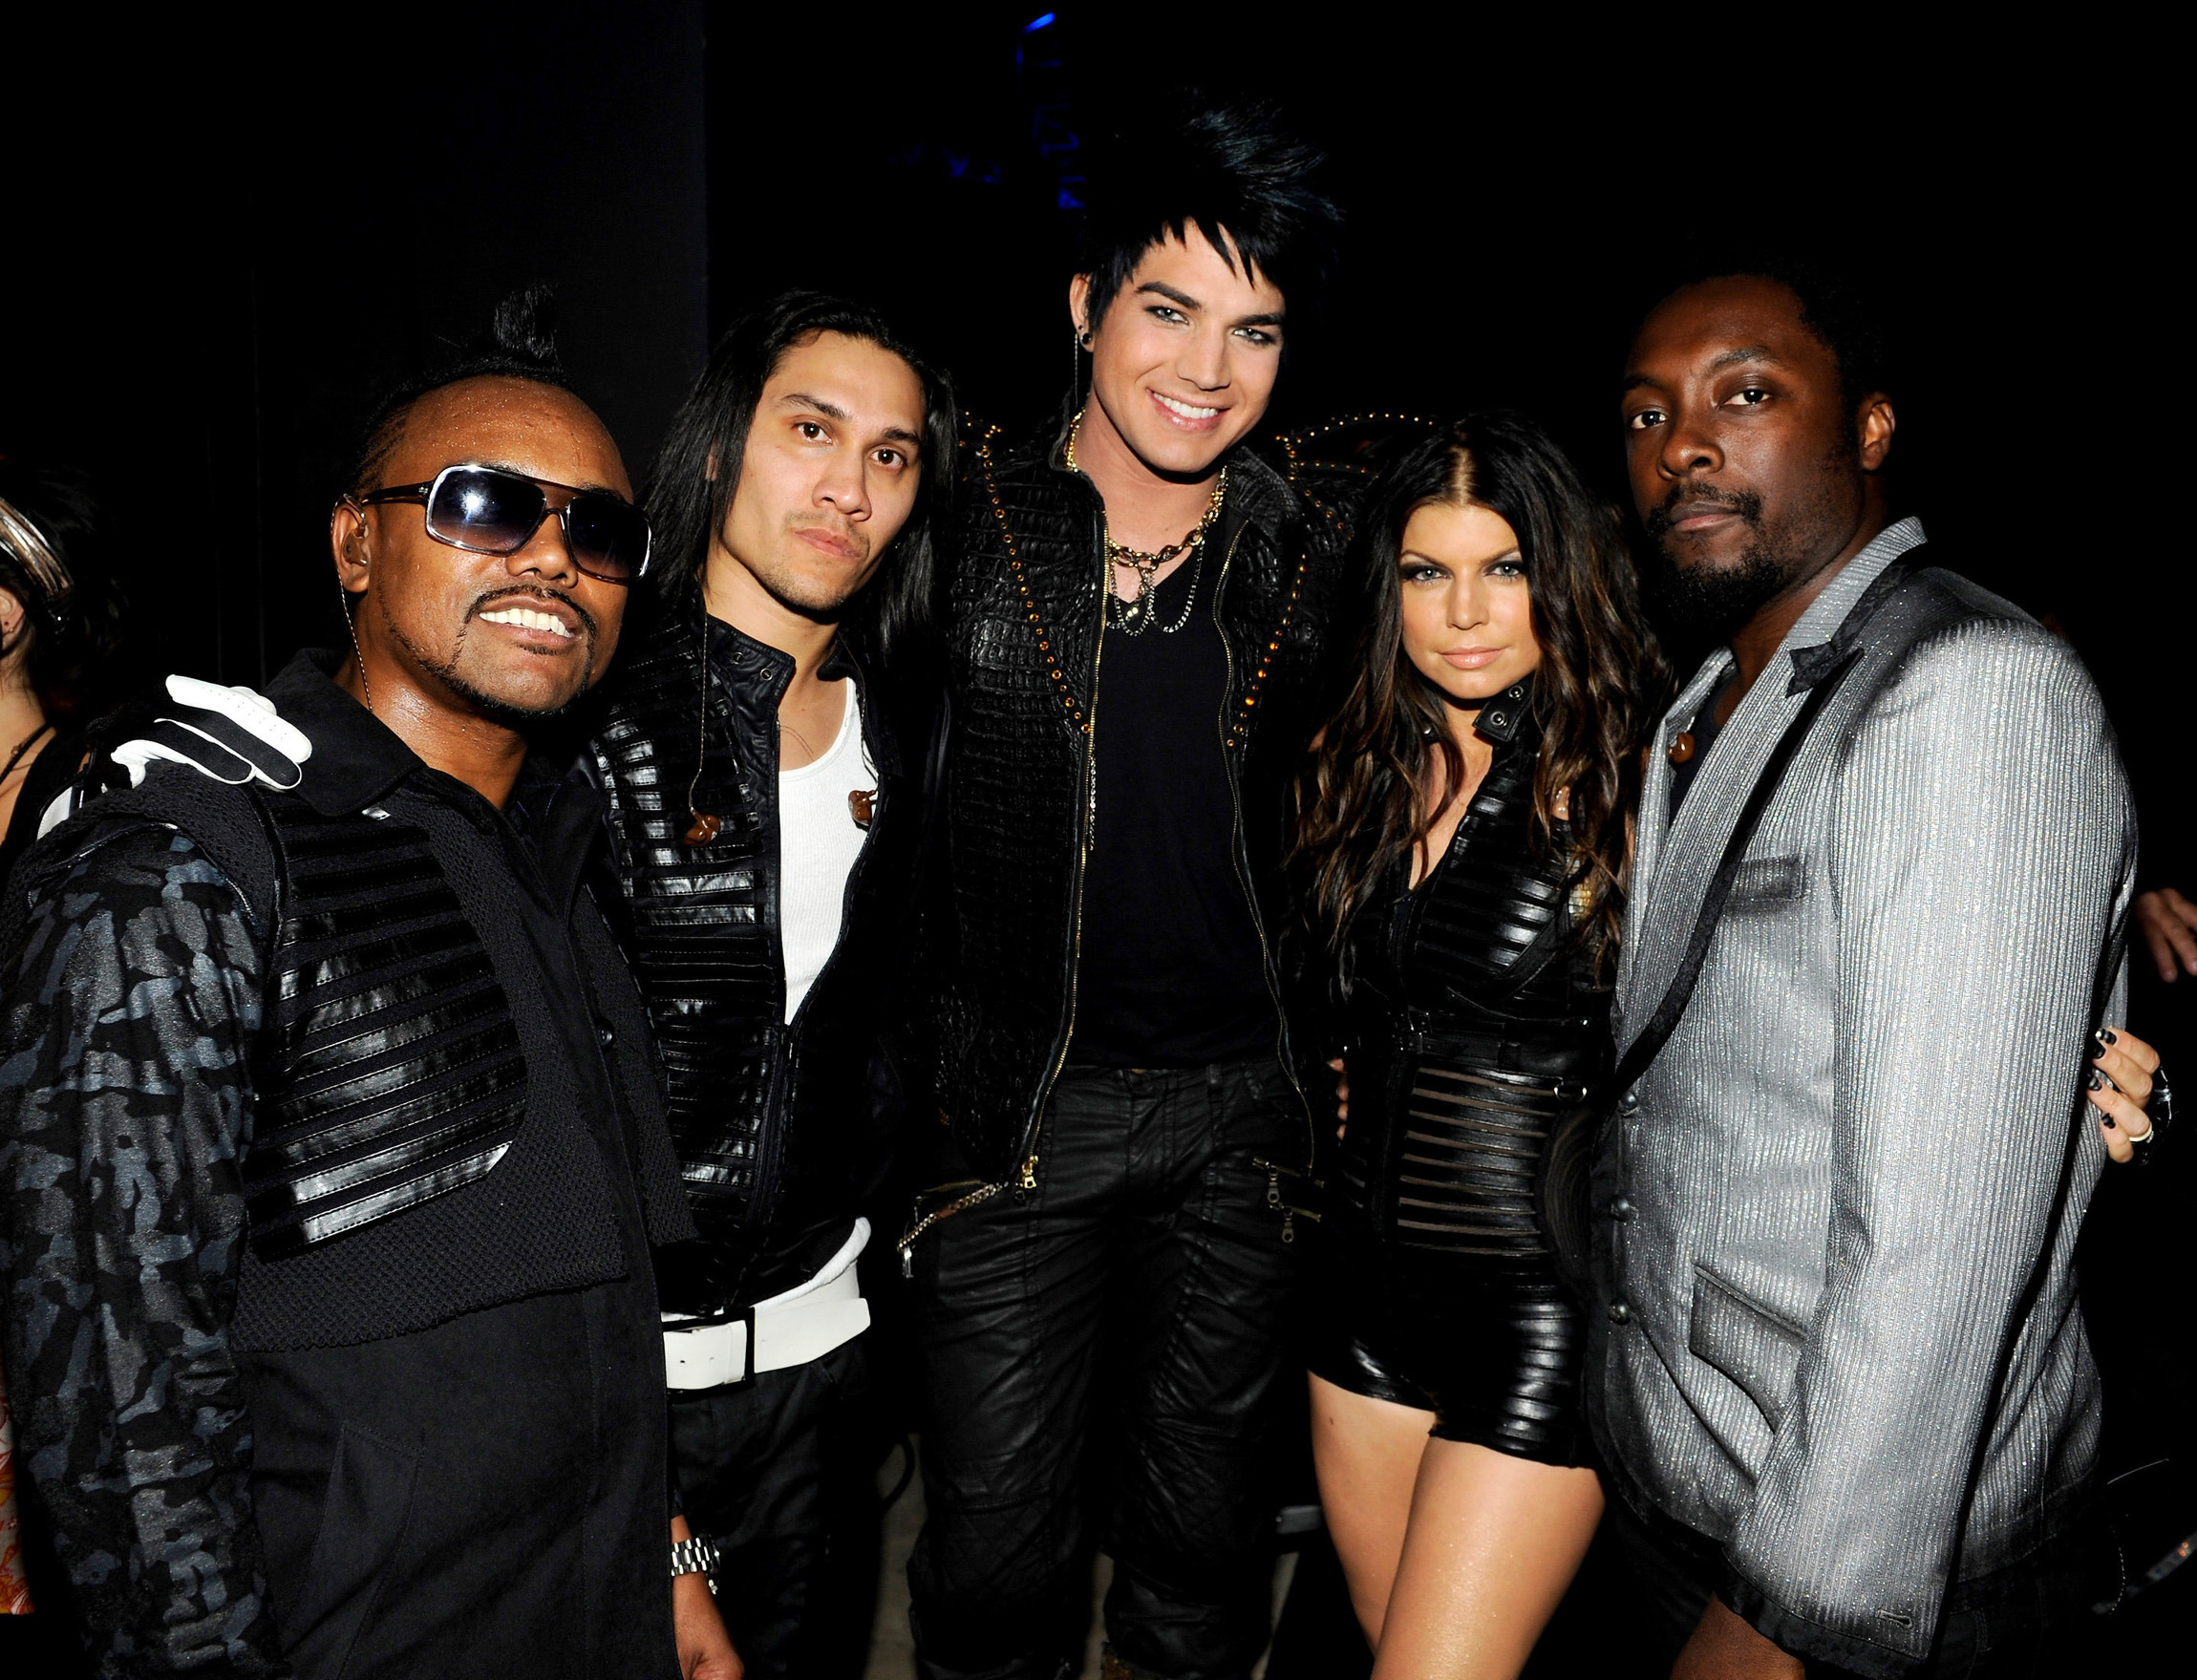 Adam, Fergie and The Black-Eyed Peas